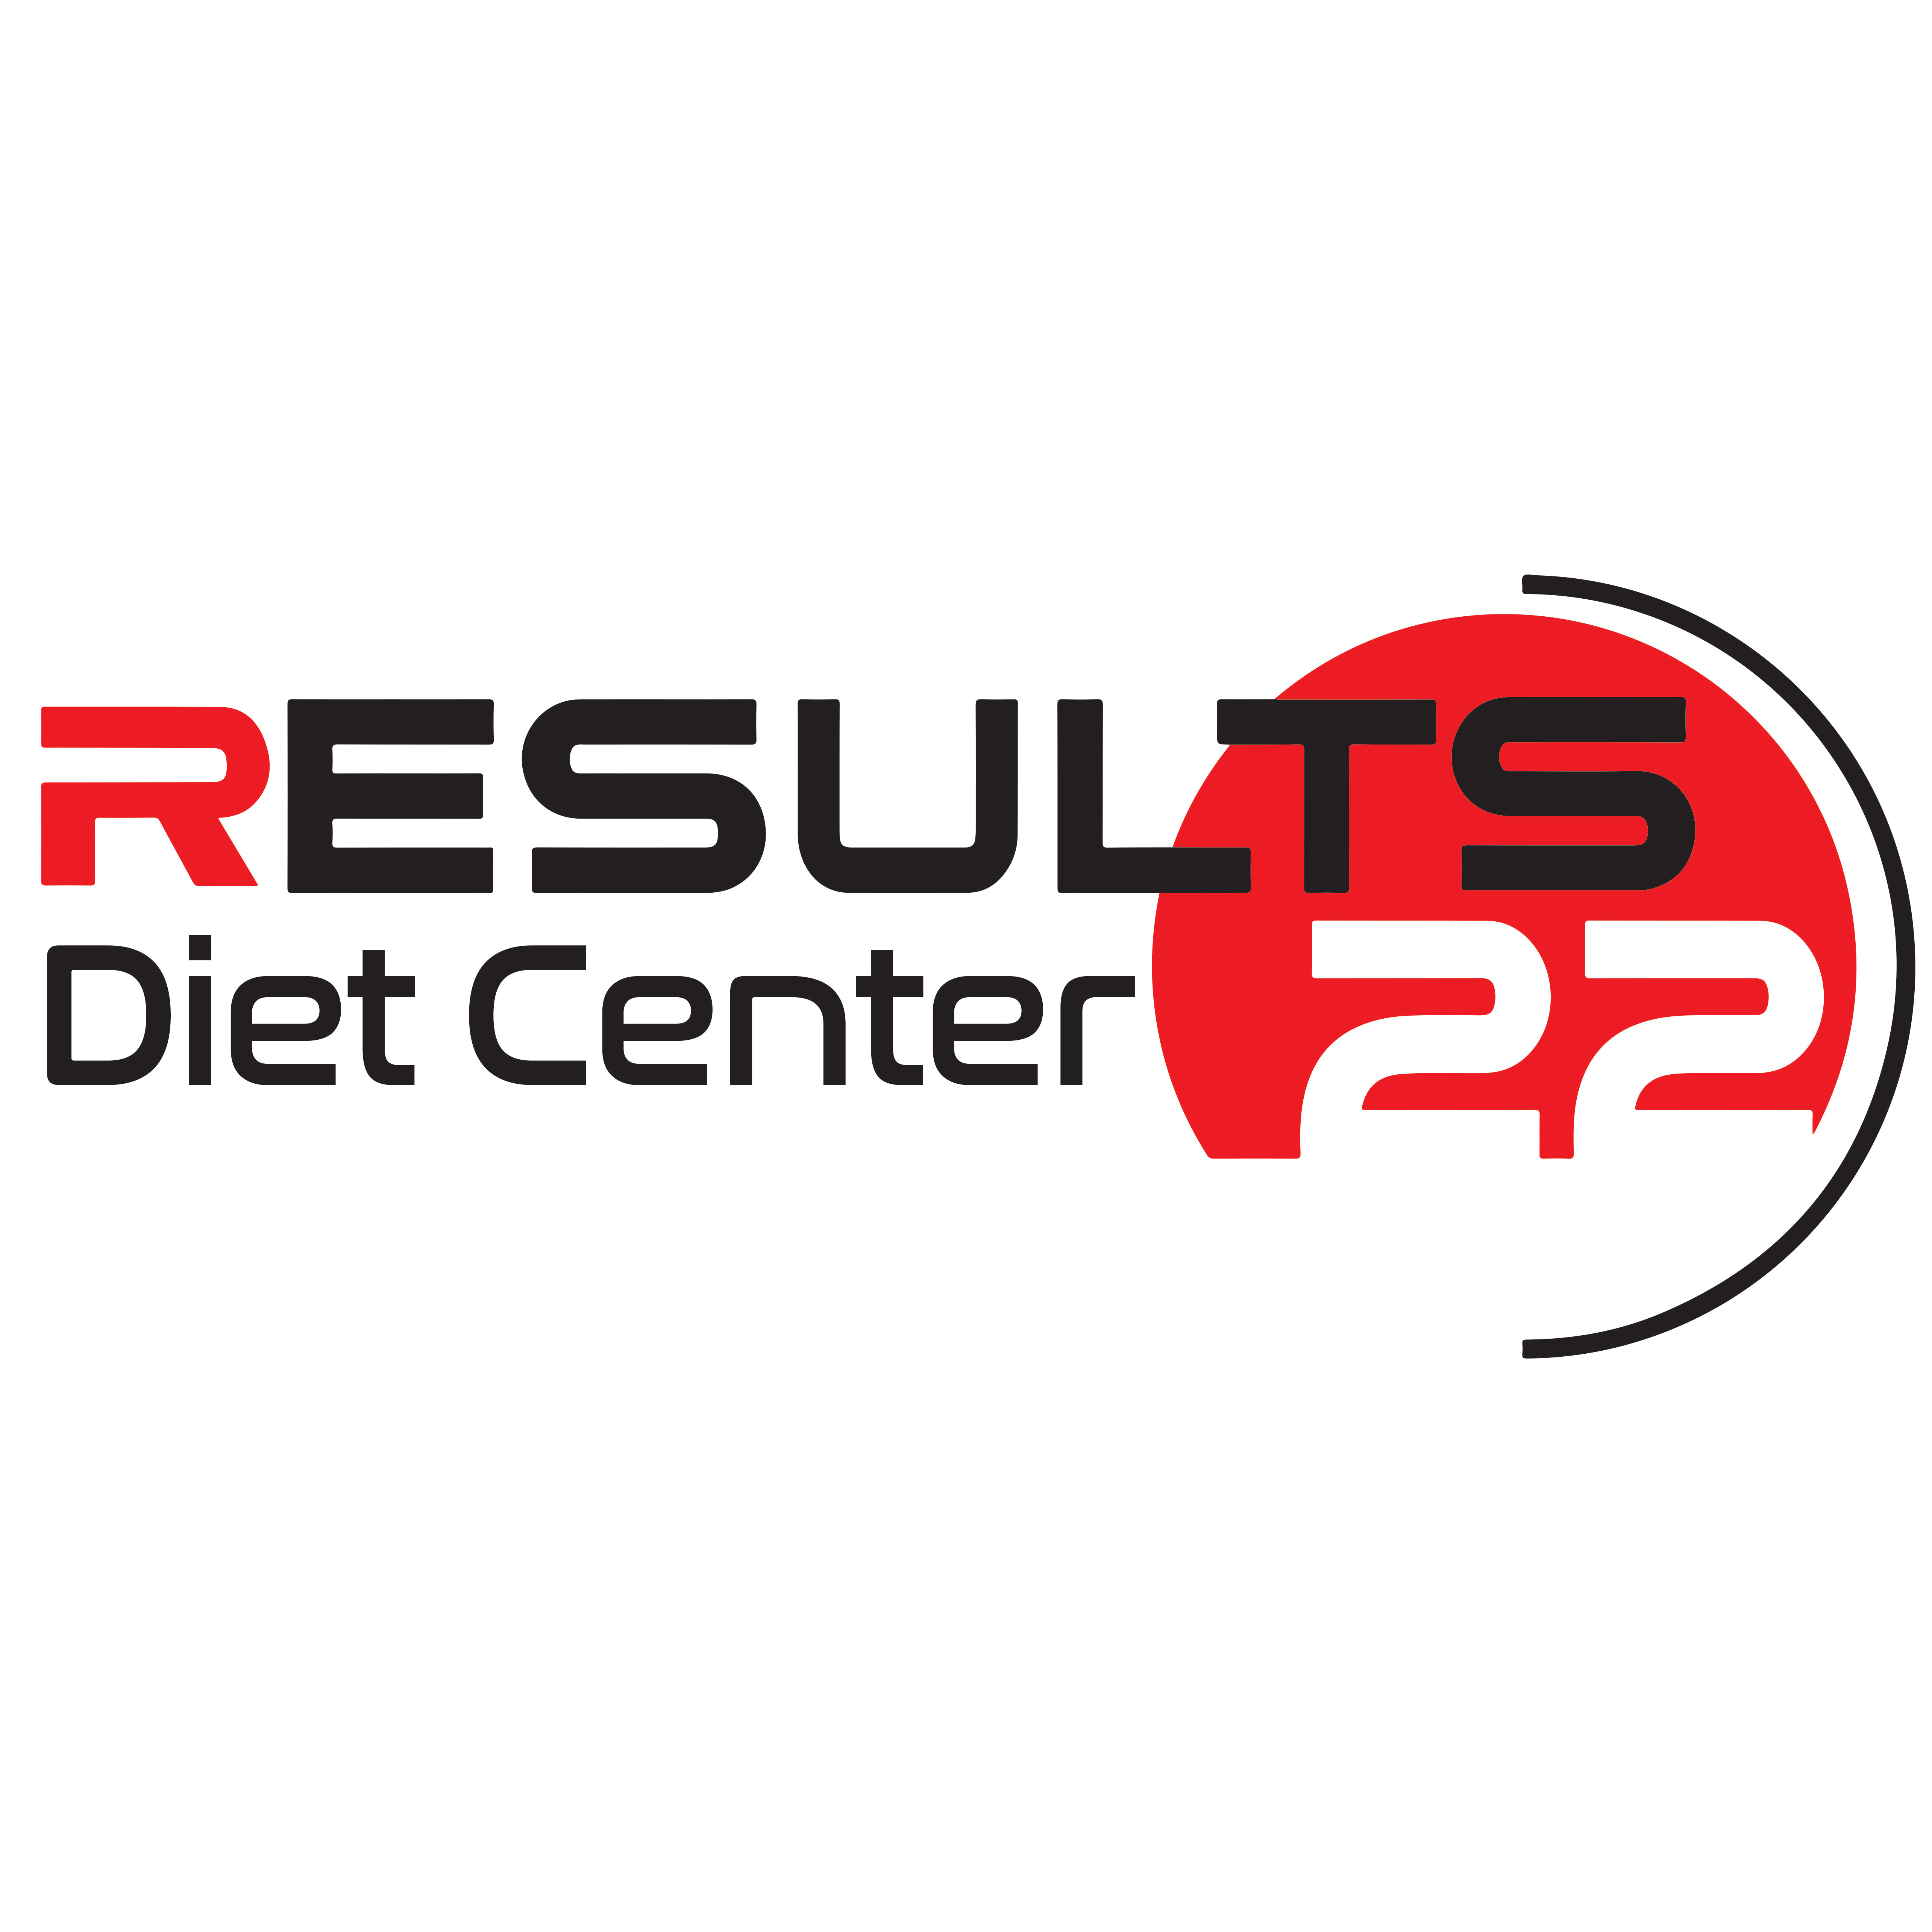 Results 22 Diet Center